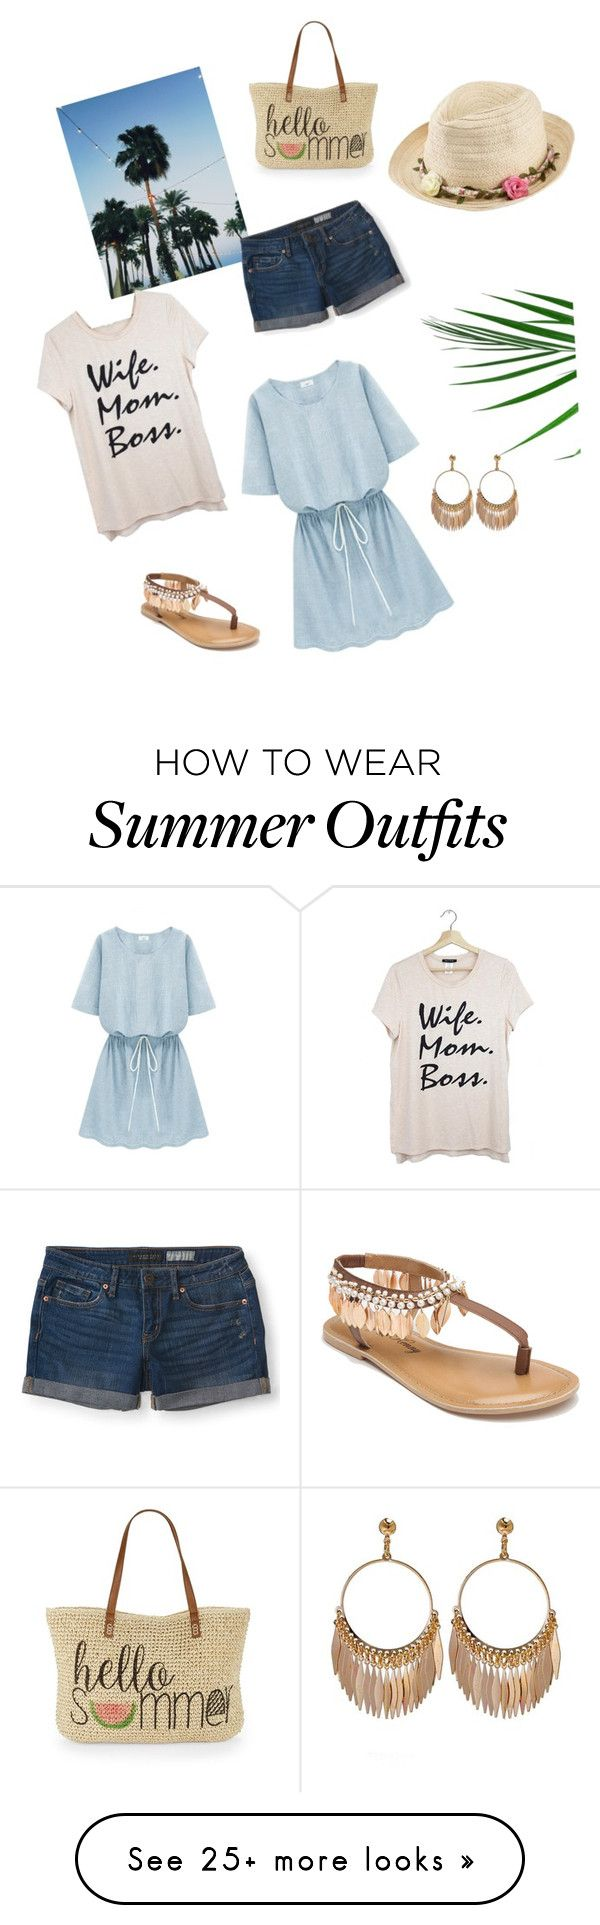 """just relax"" by baska-m on Polyvore featuring Penny Loves Kenny, Aé..."